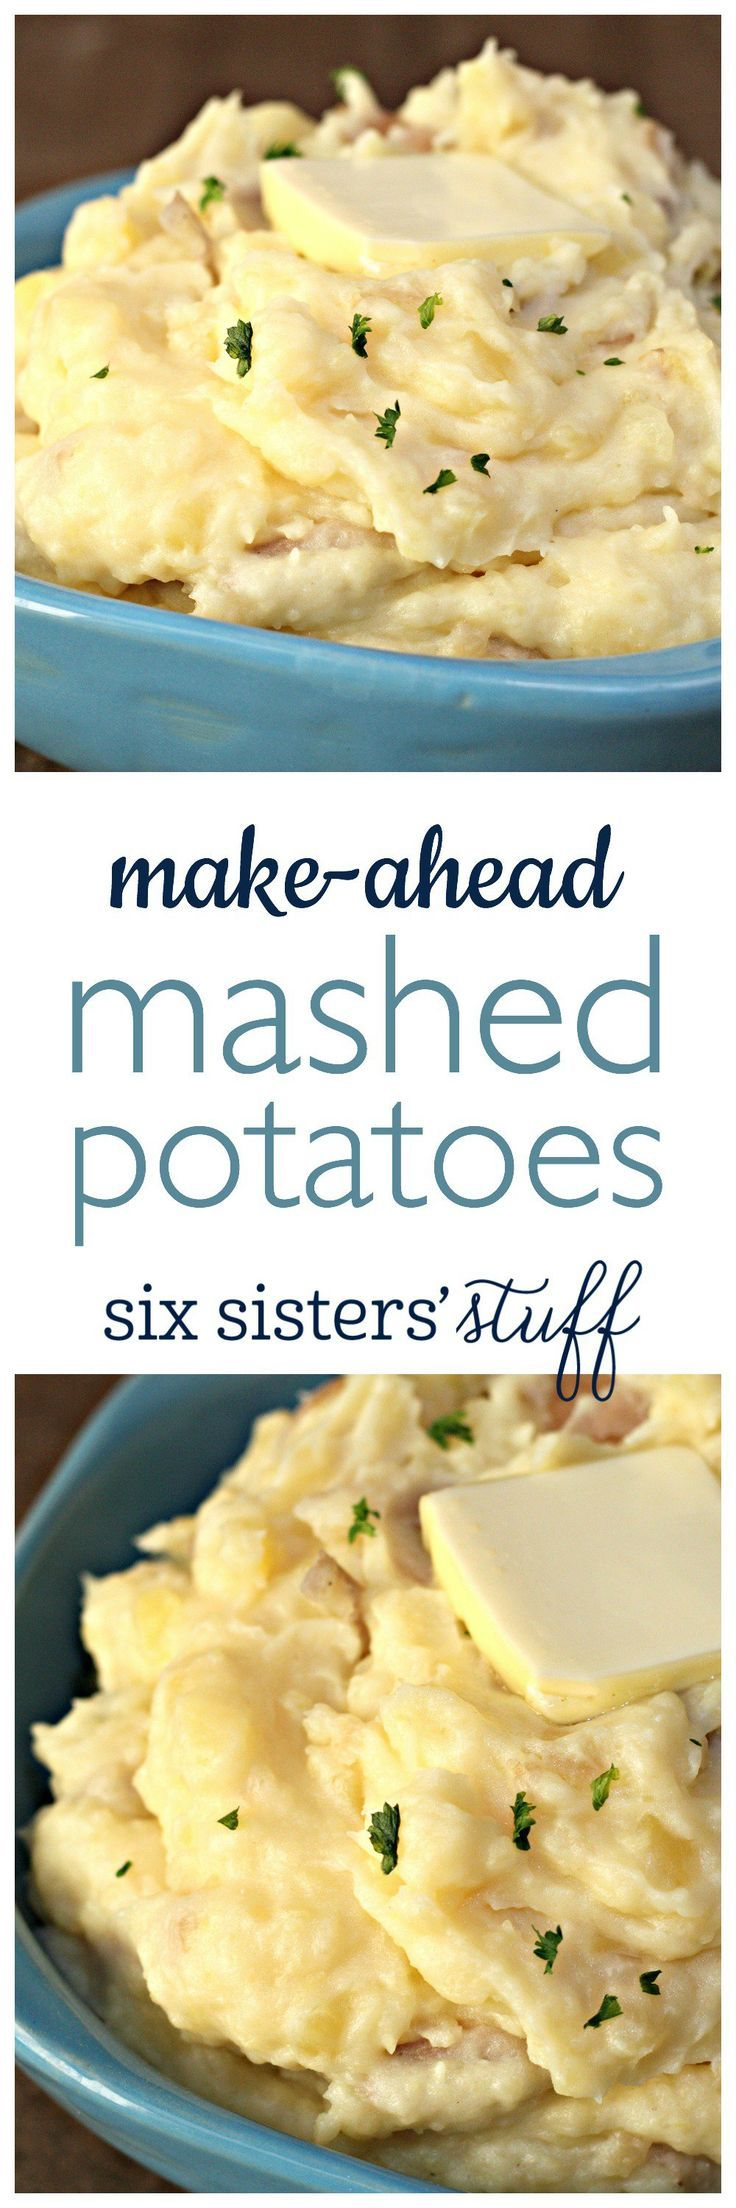 how to make creamy mashed potatoes ahead of time